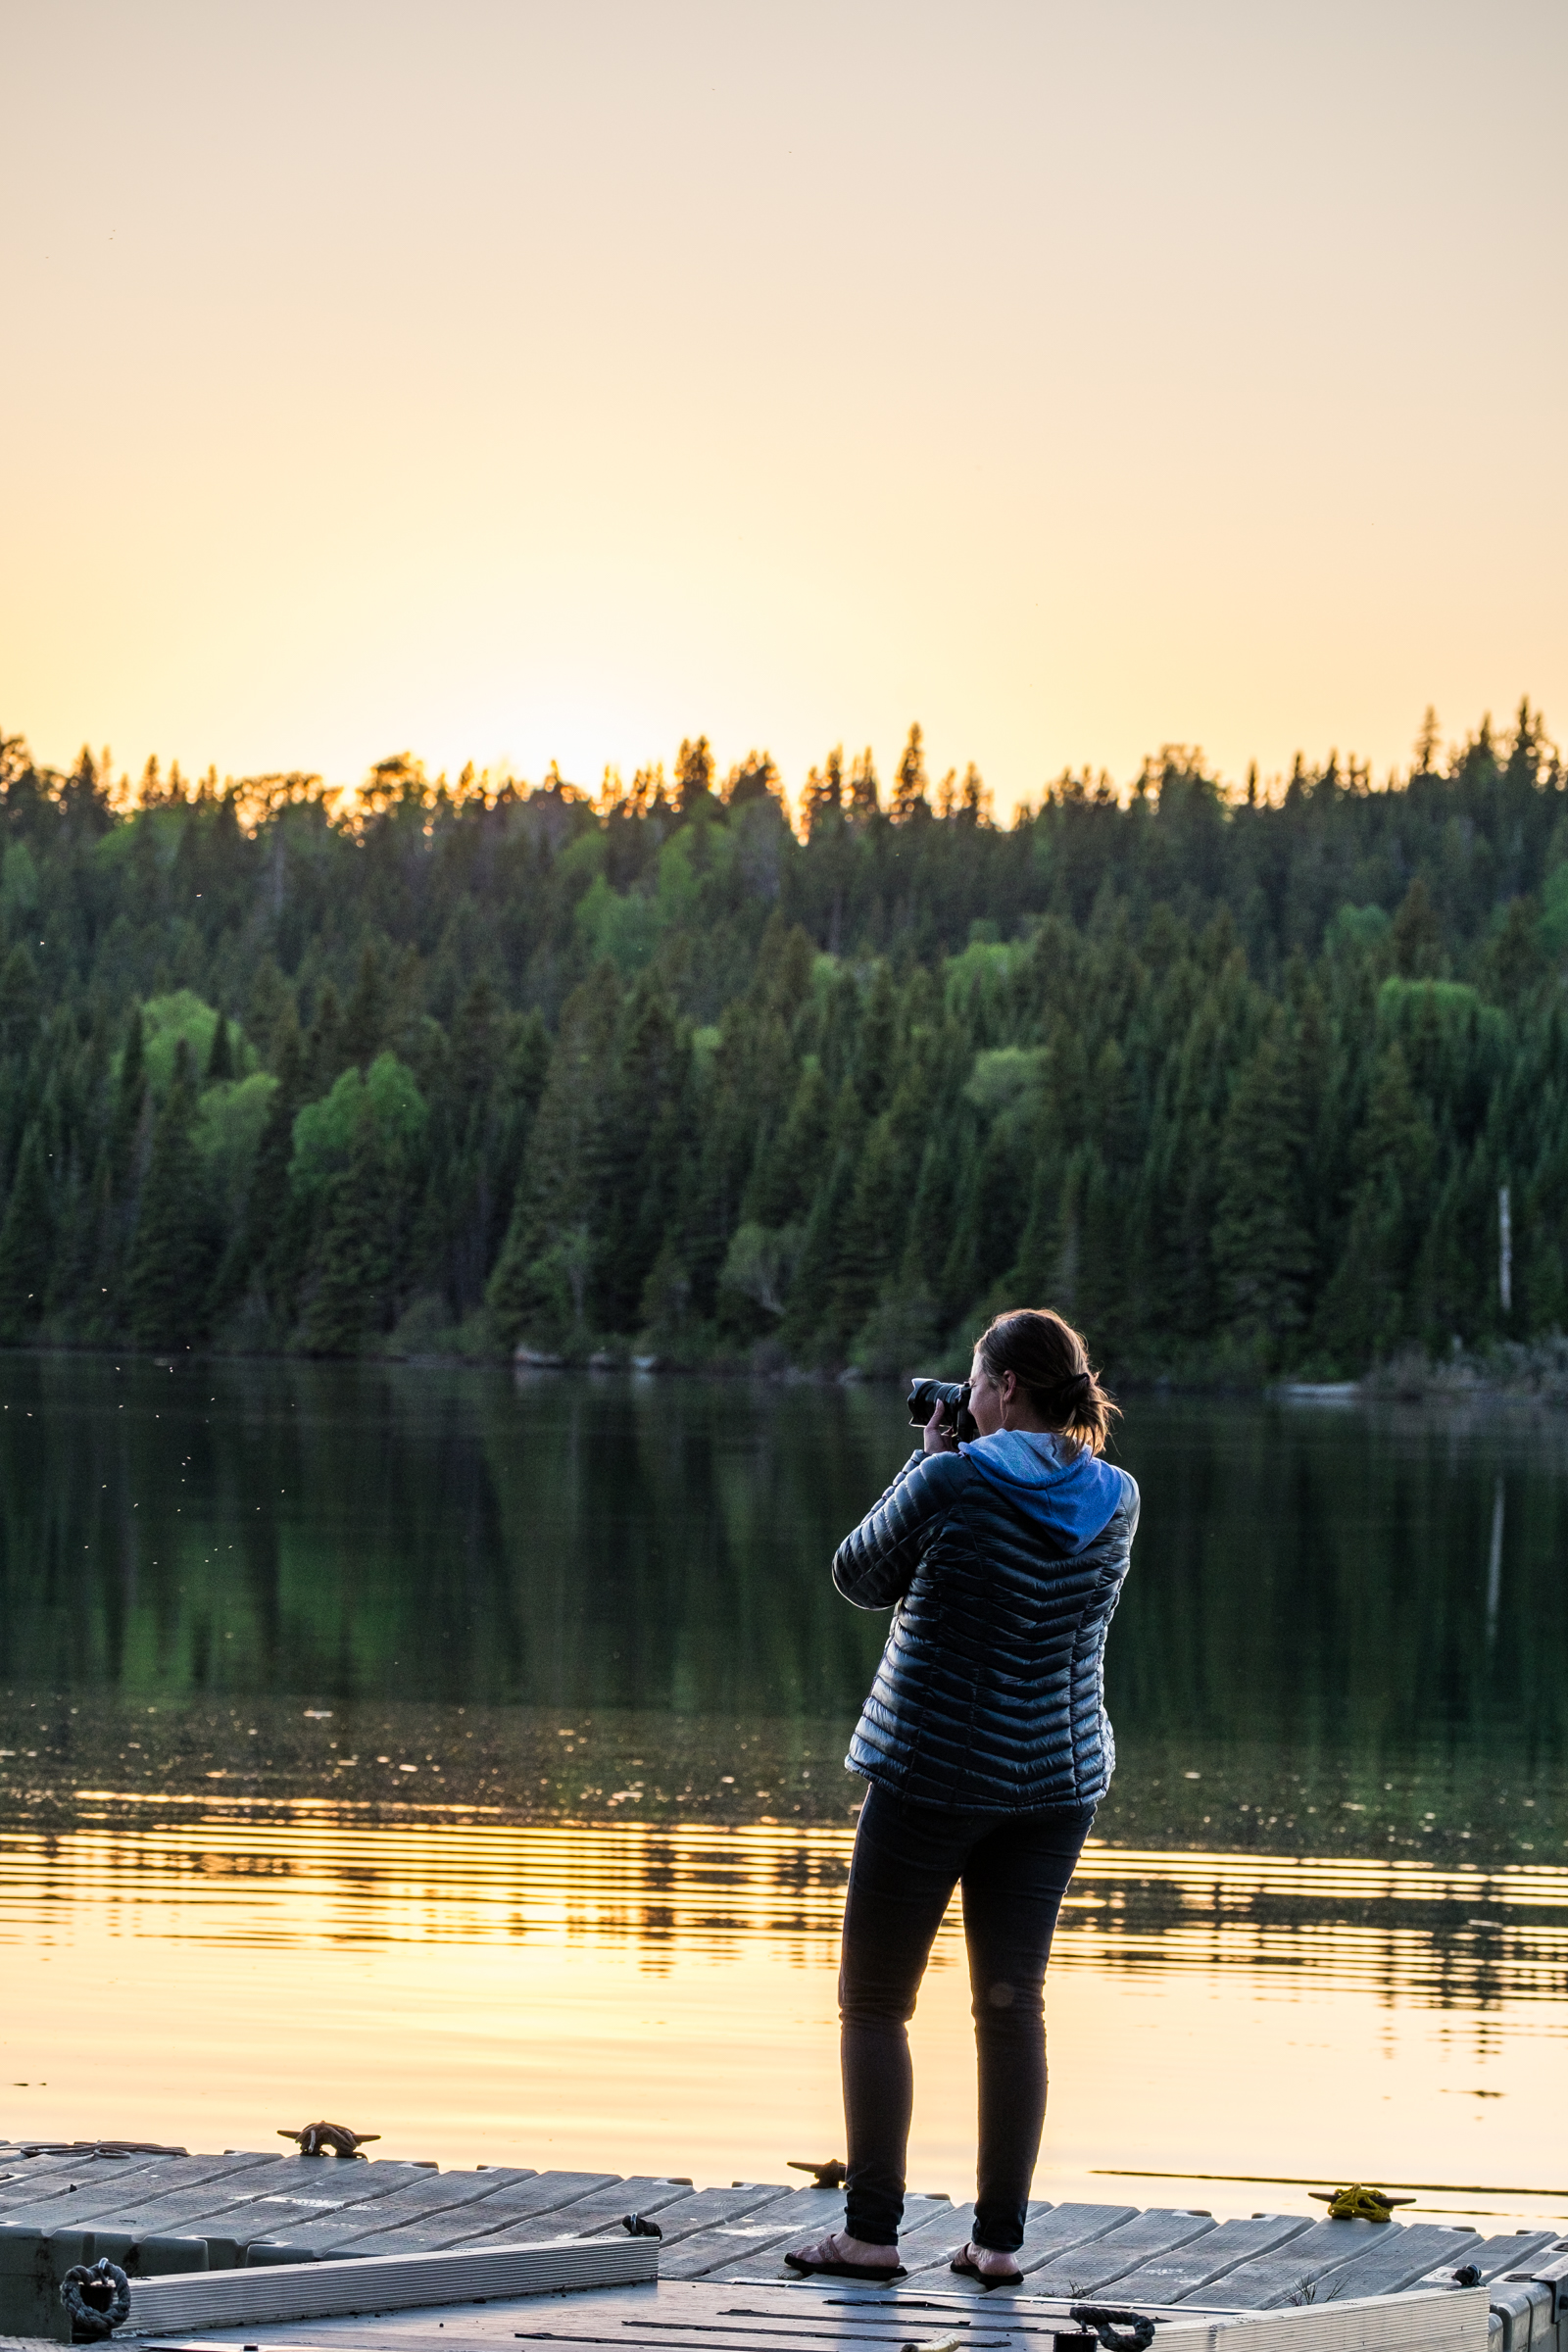 Capturing the sunset at Isle Royale National Park in Michigan's Upper Peninsula.